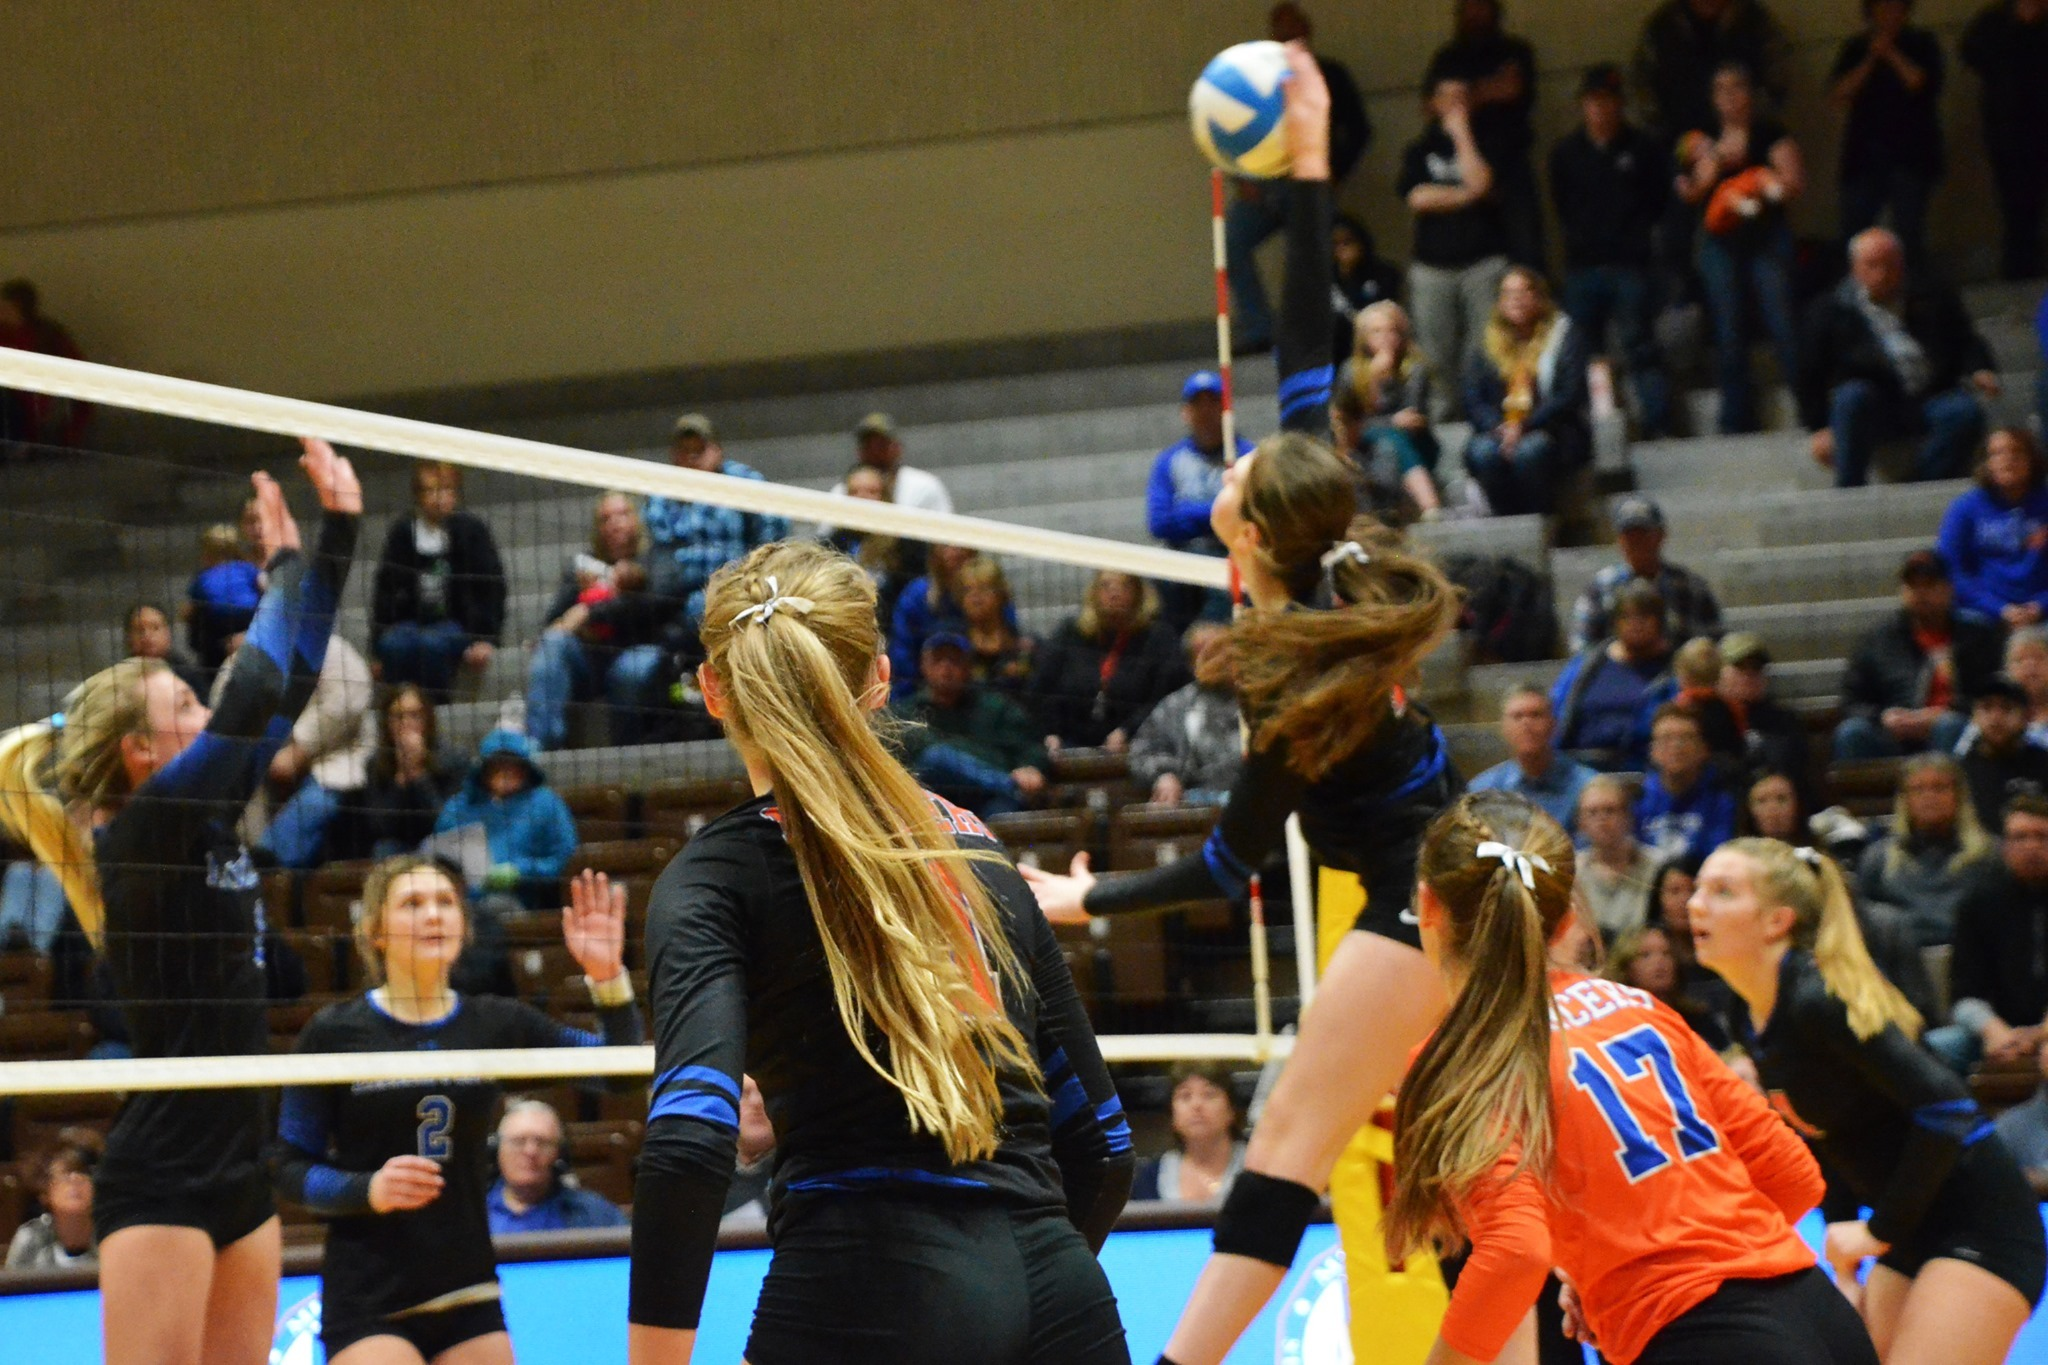 Canby Lancer Volleyball player hitting ball